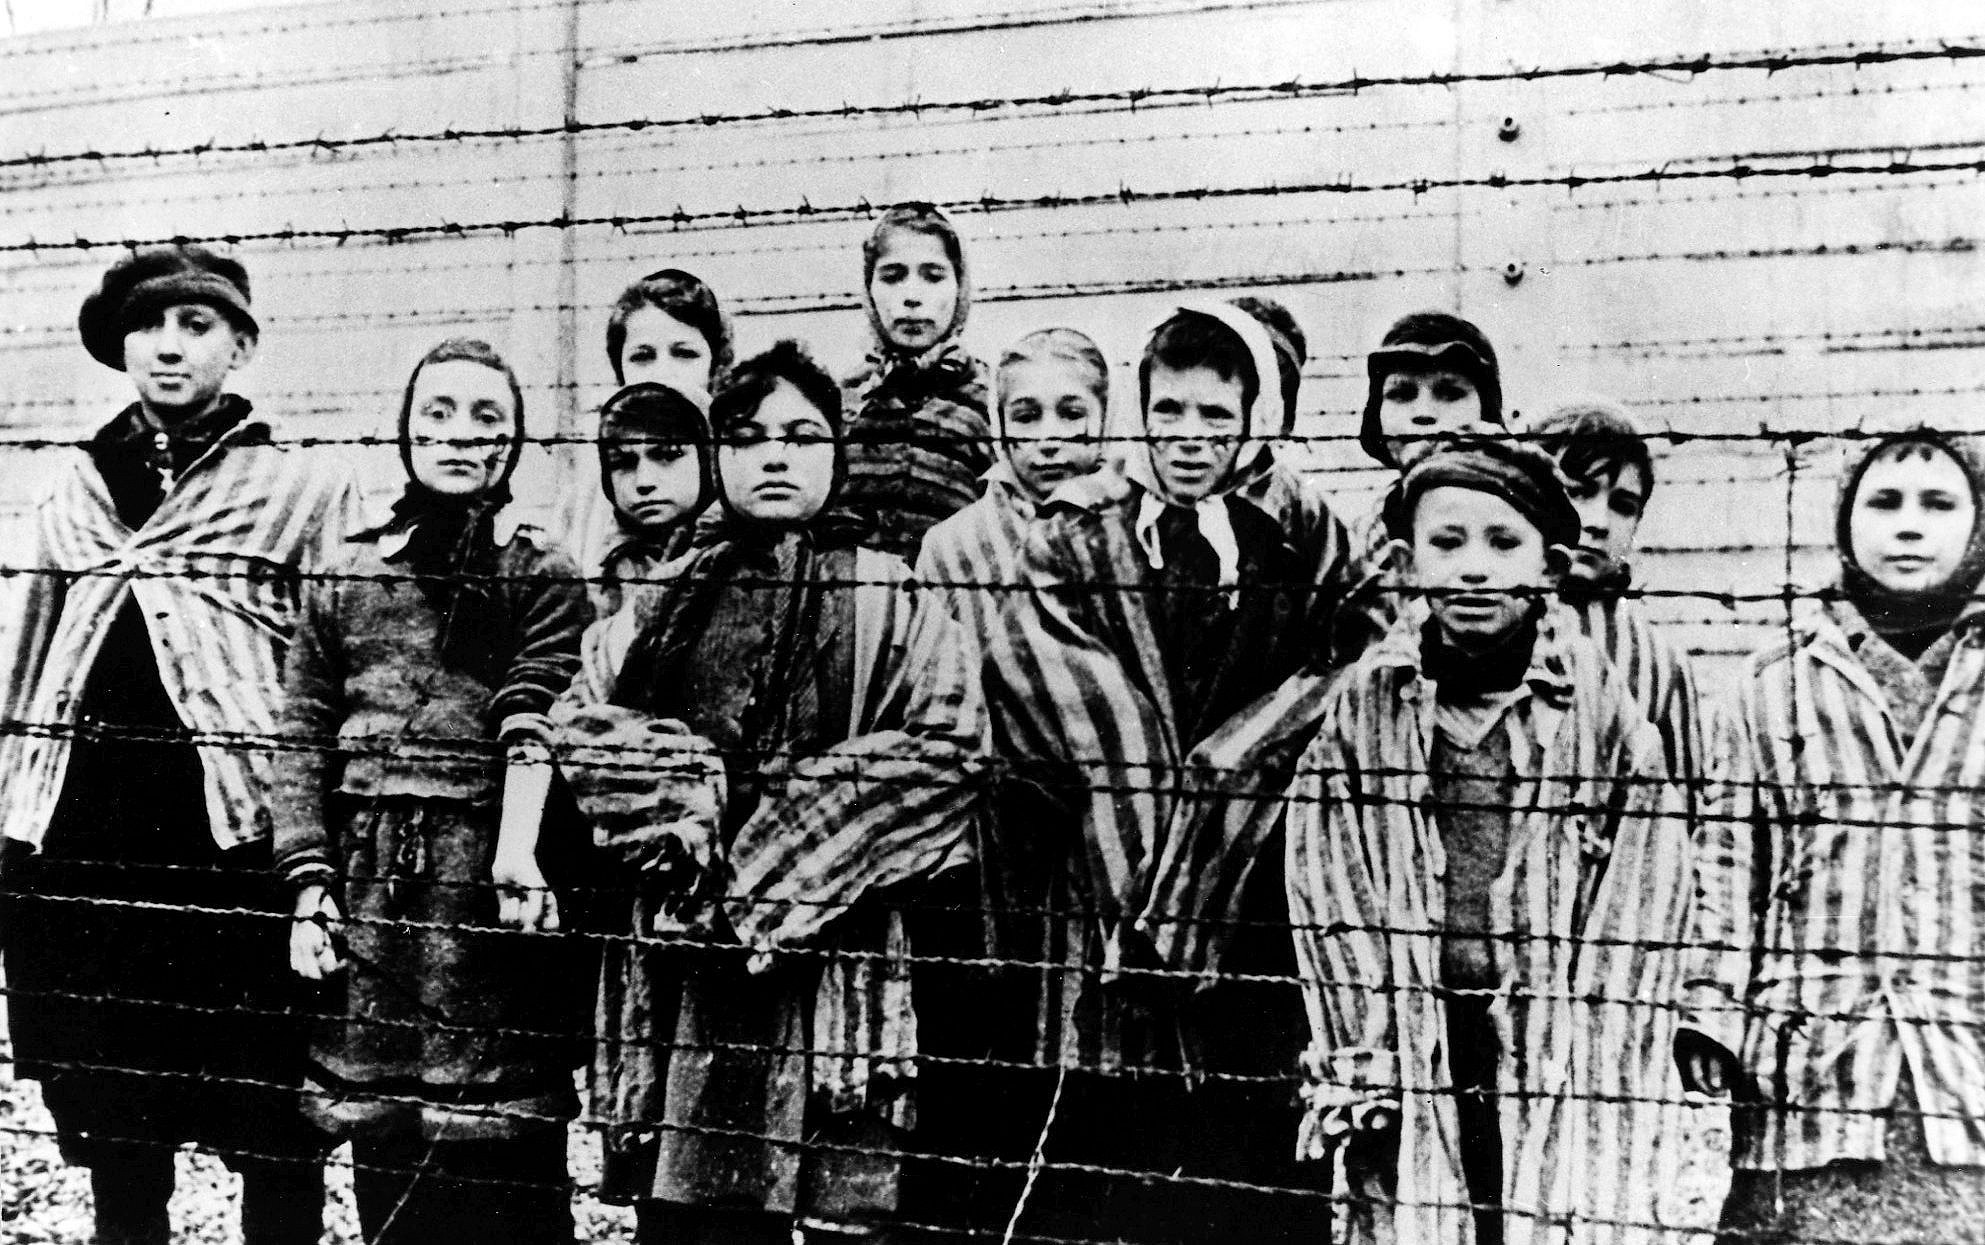 Poland set to amend controversial Holocaust law, nixing penalties ...